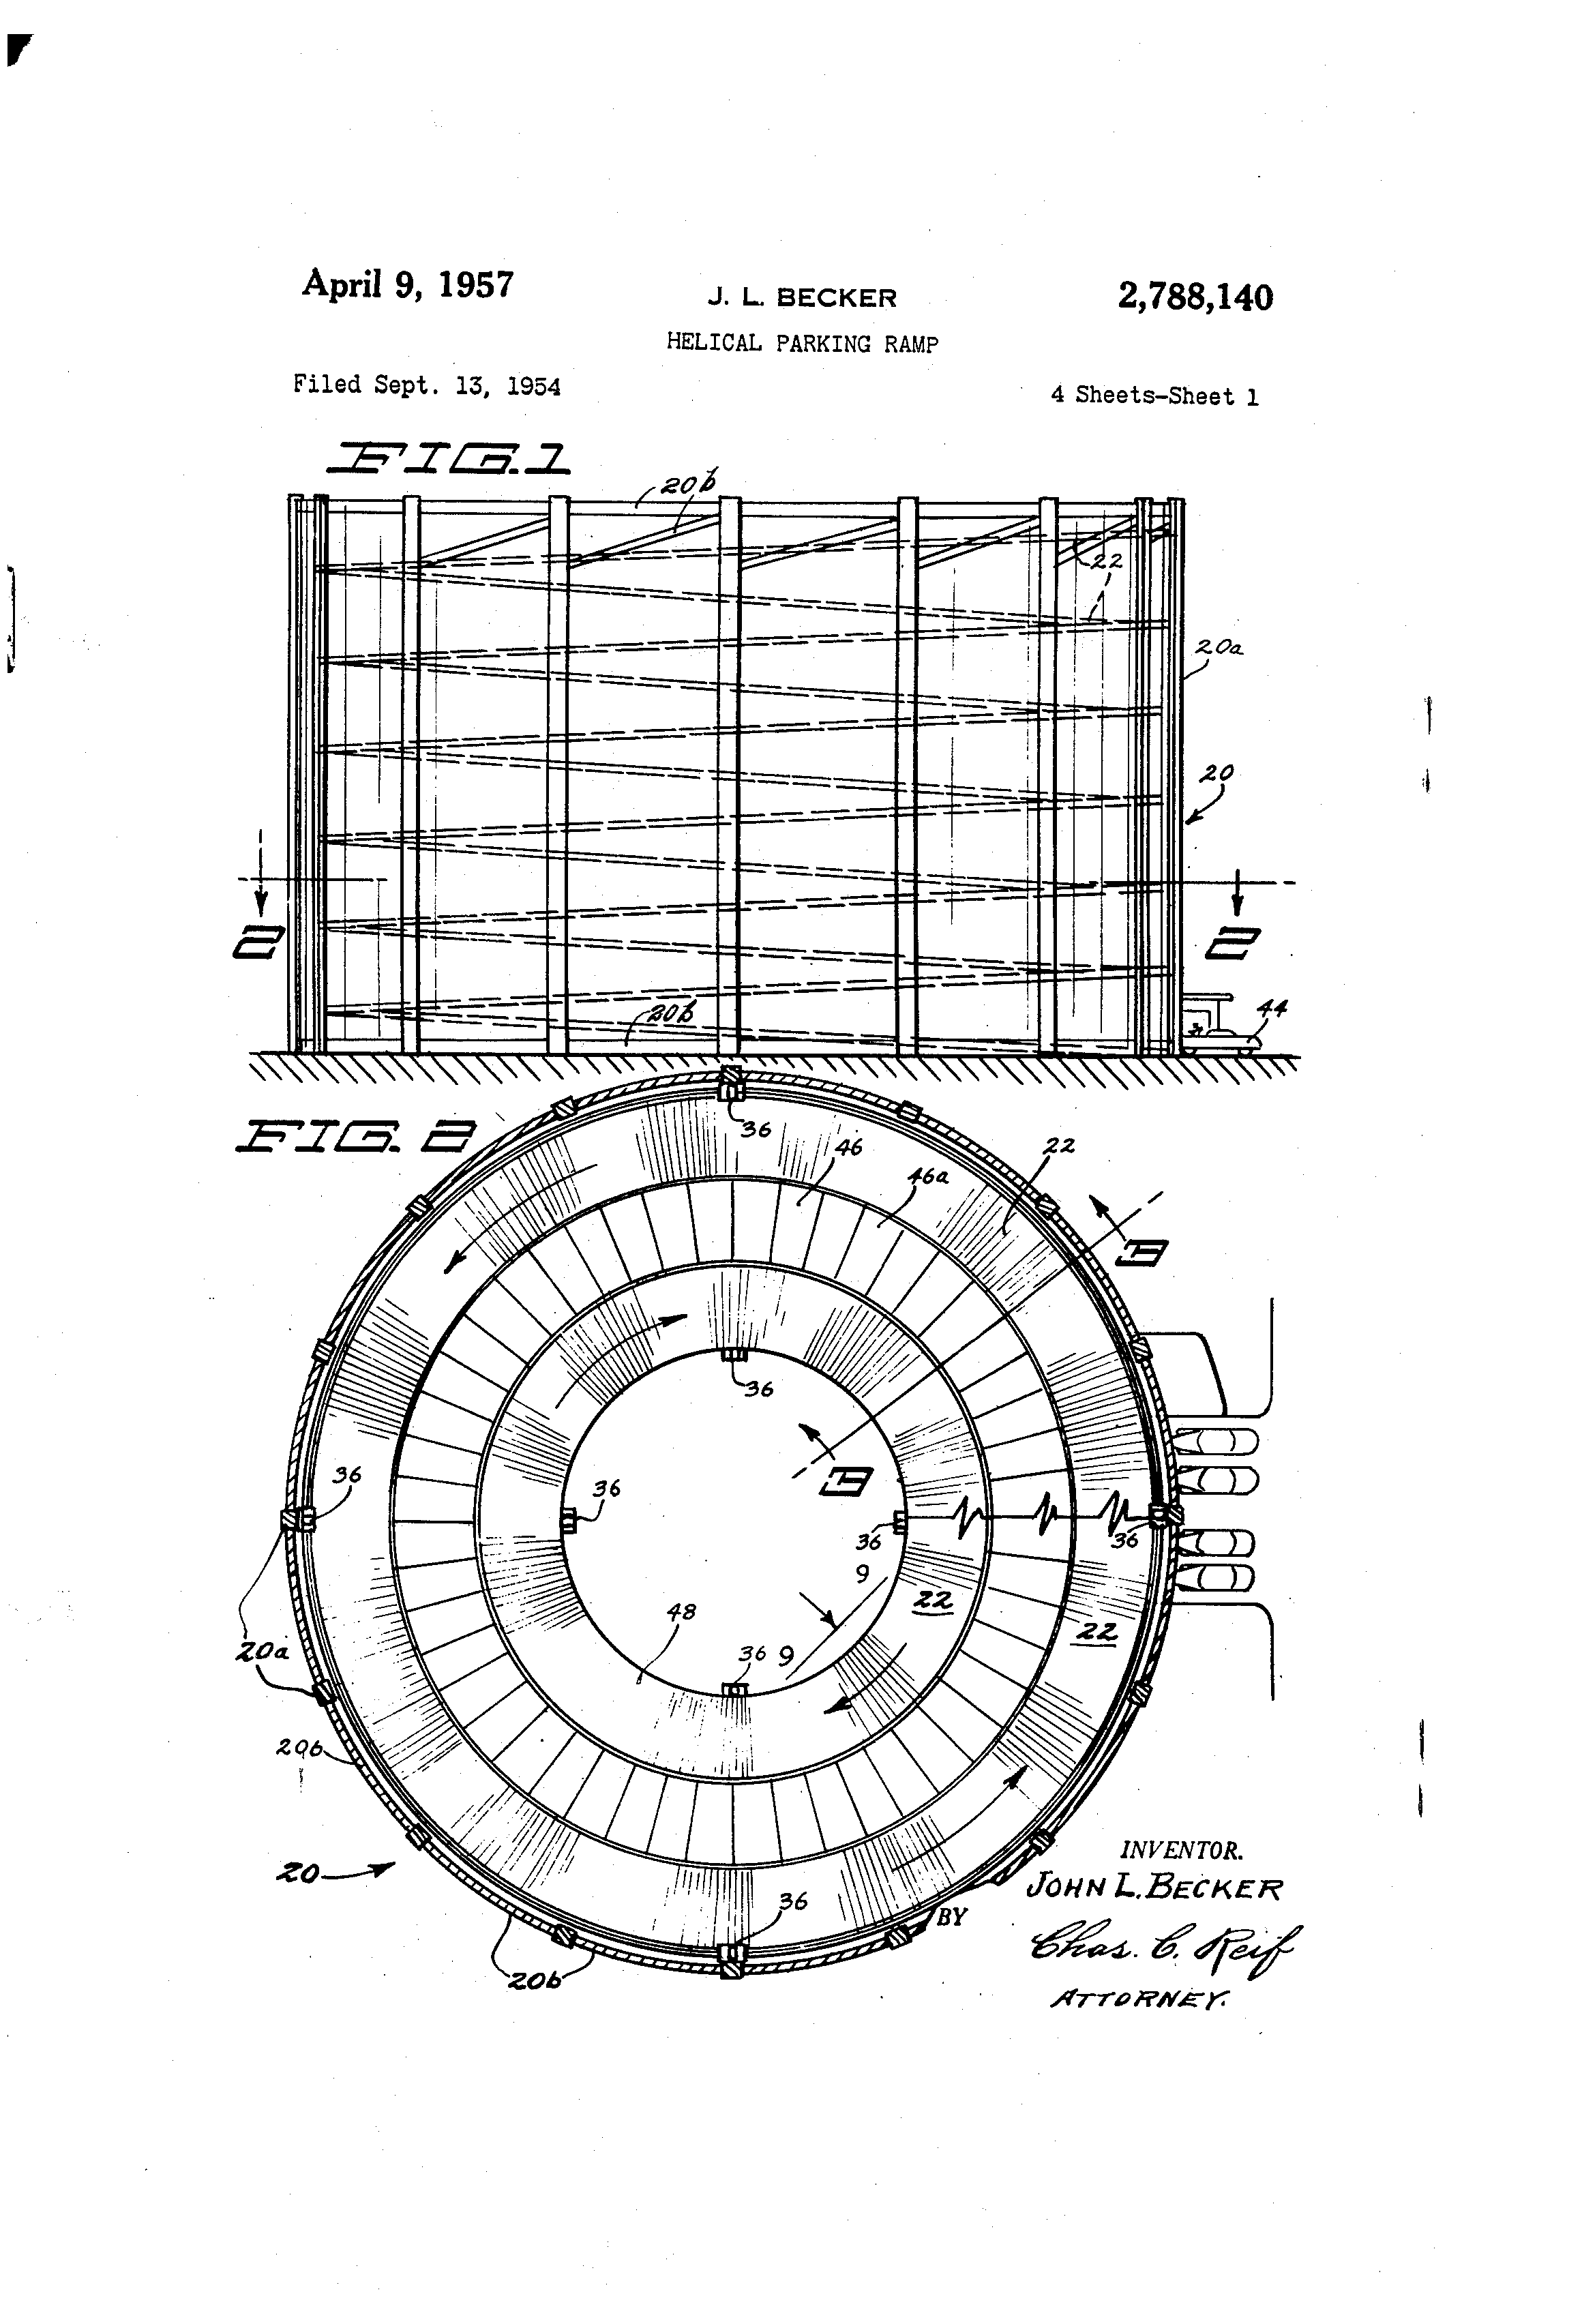 Hong Kong Apartment Floor Plan Patent Us2788140 Helical Parking Ramp Google Patents